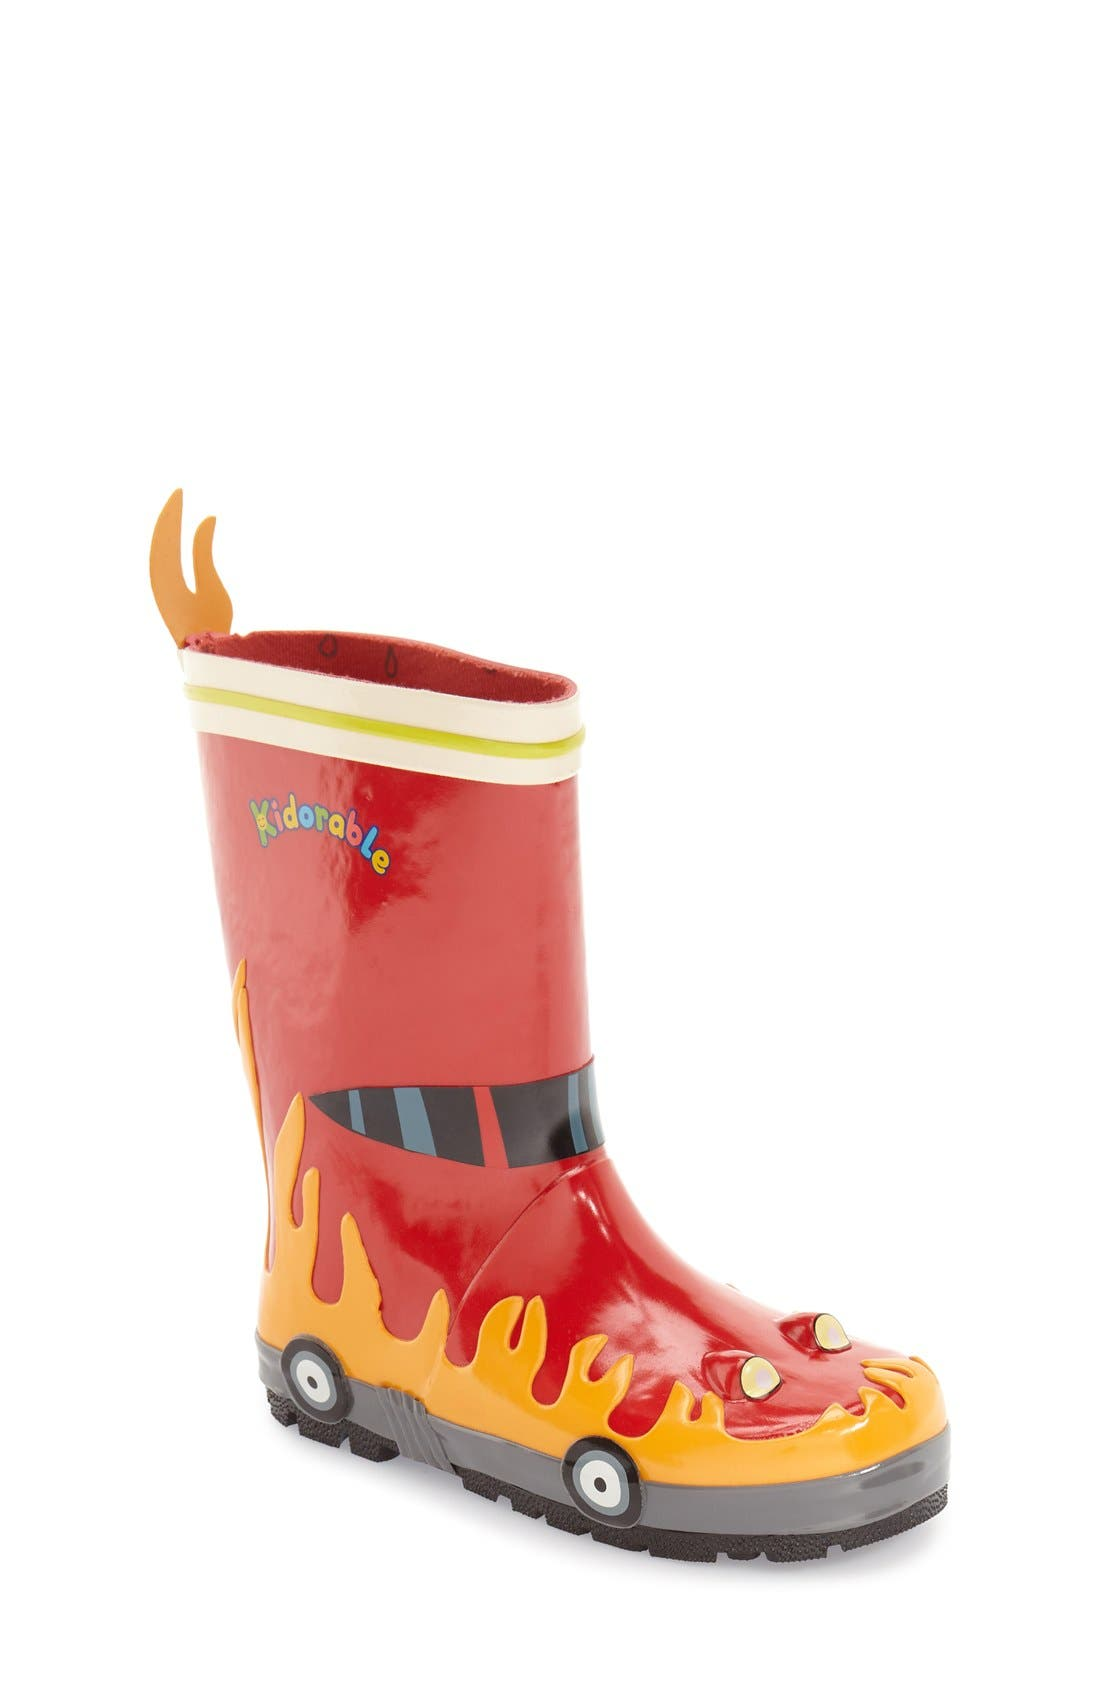 Main Image - Kidorable 'Fireman' Waterproof Rain Boot (Walker, Toddler & Little Kid)